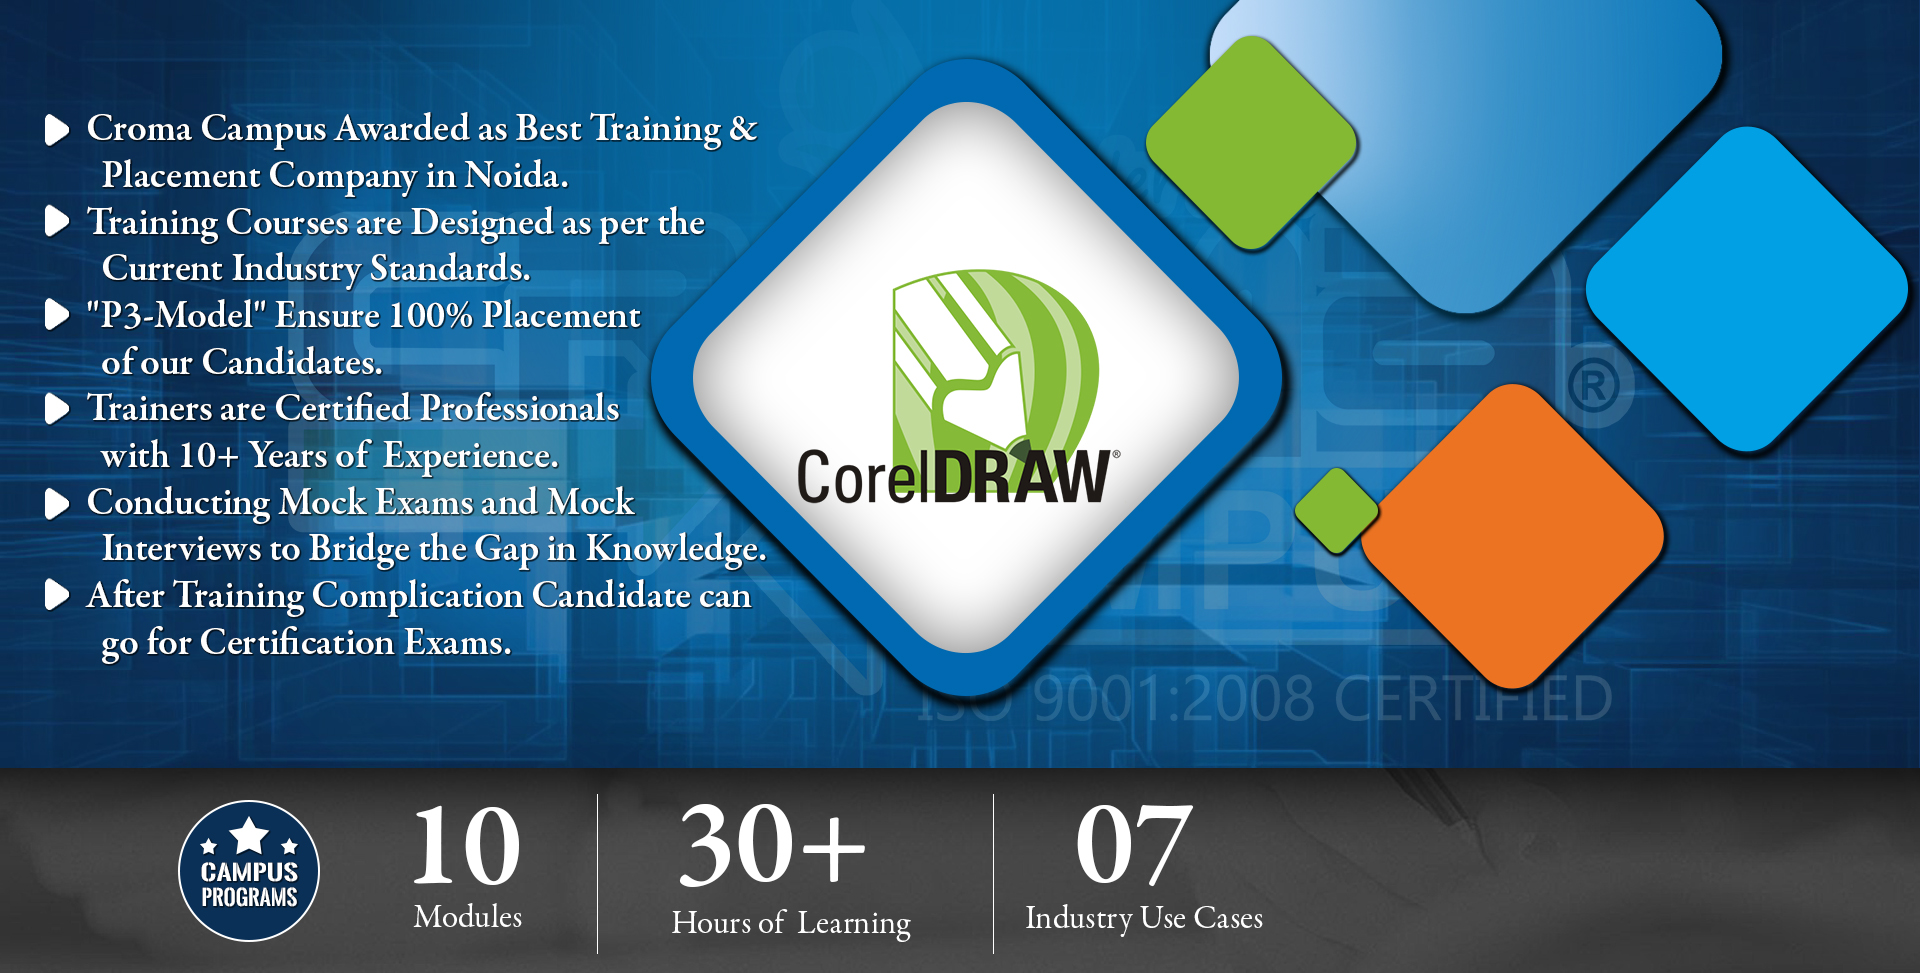 CorelDRAW Training in Delhi